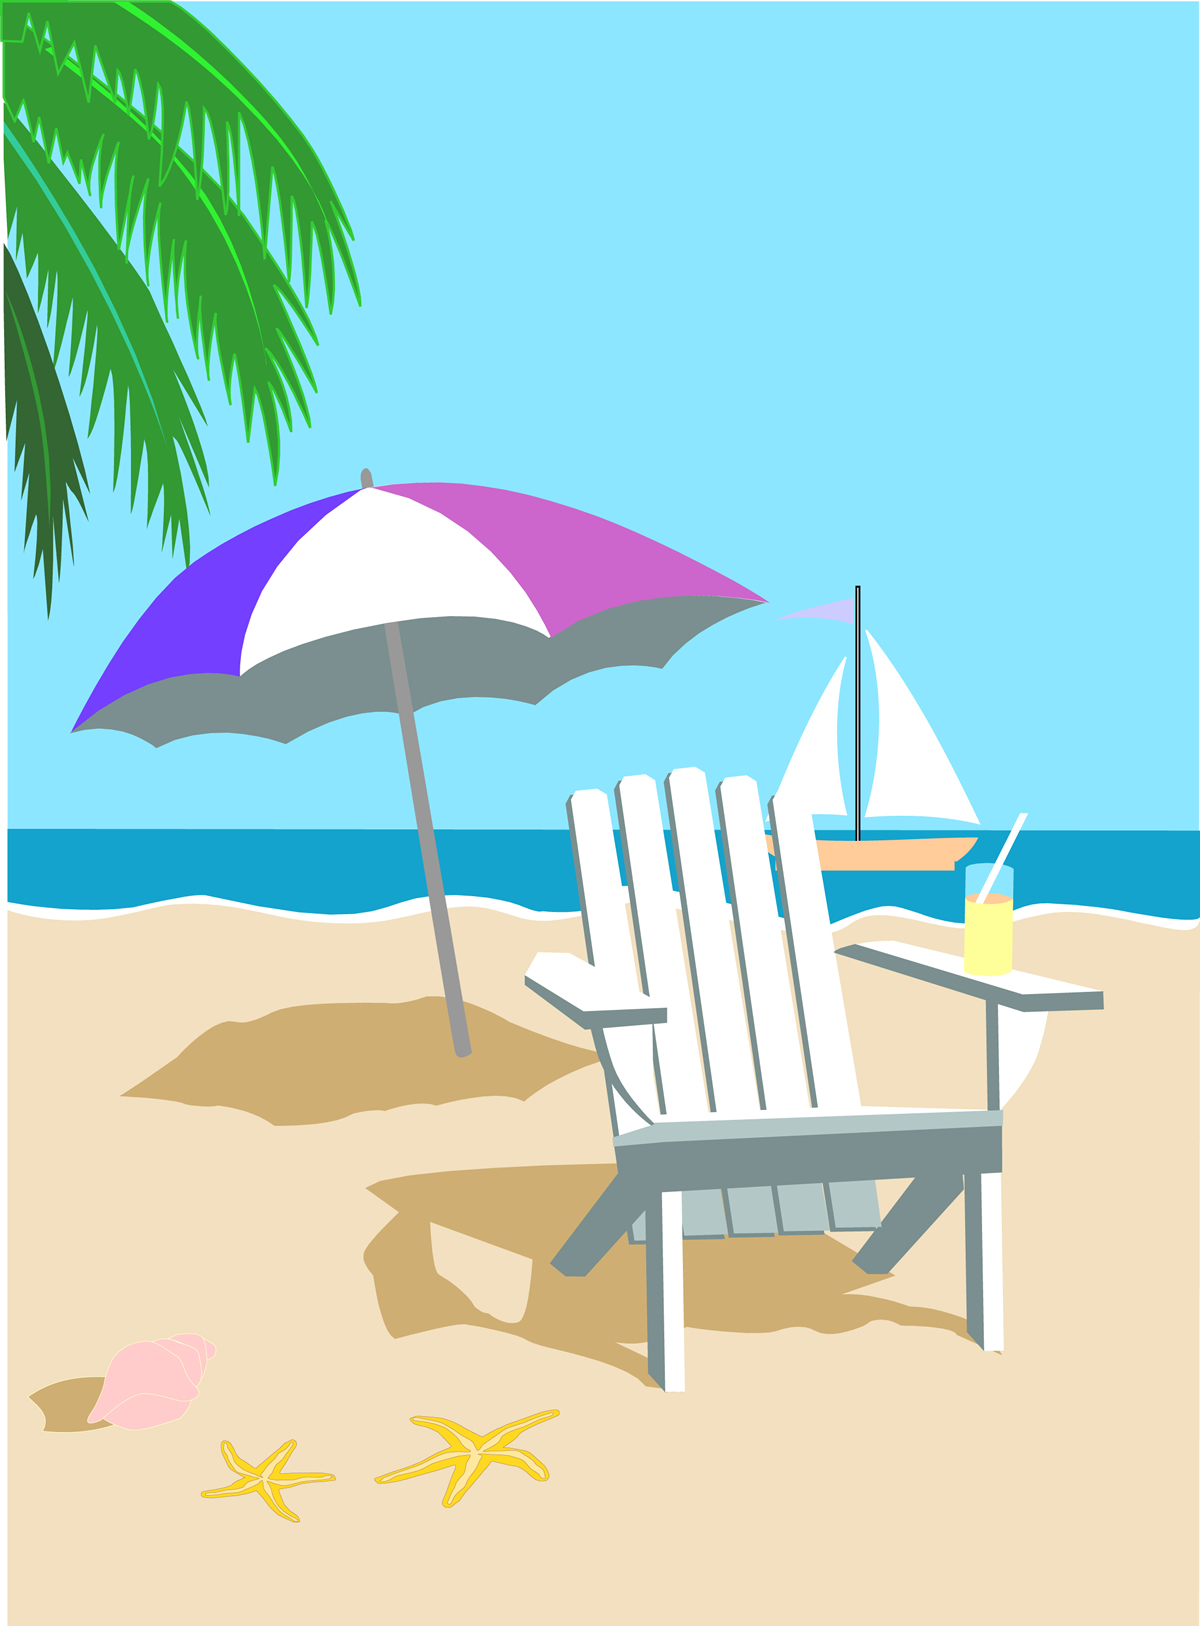 1000  images about Beach u0026amp; Summer days on Pinterest | Clip art, Beaches and Album